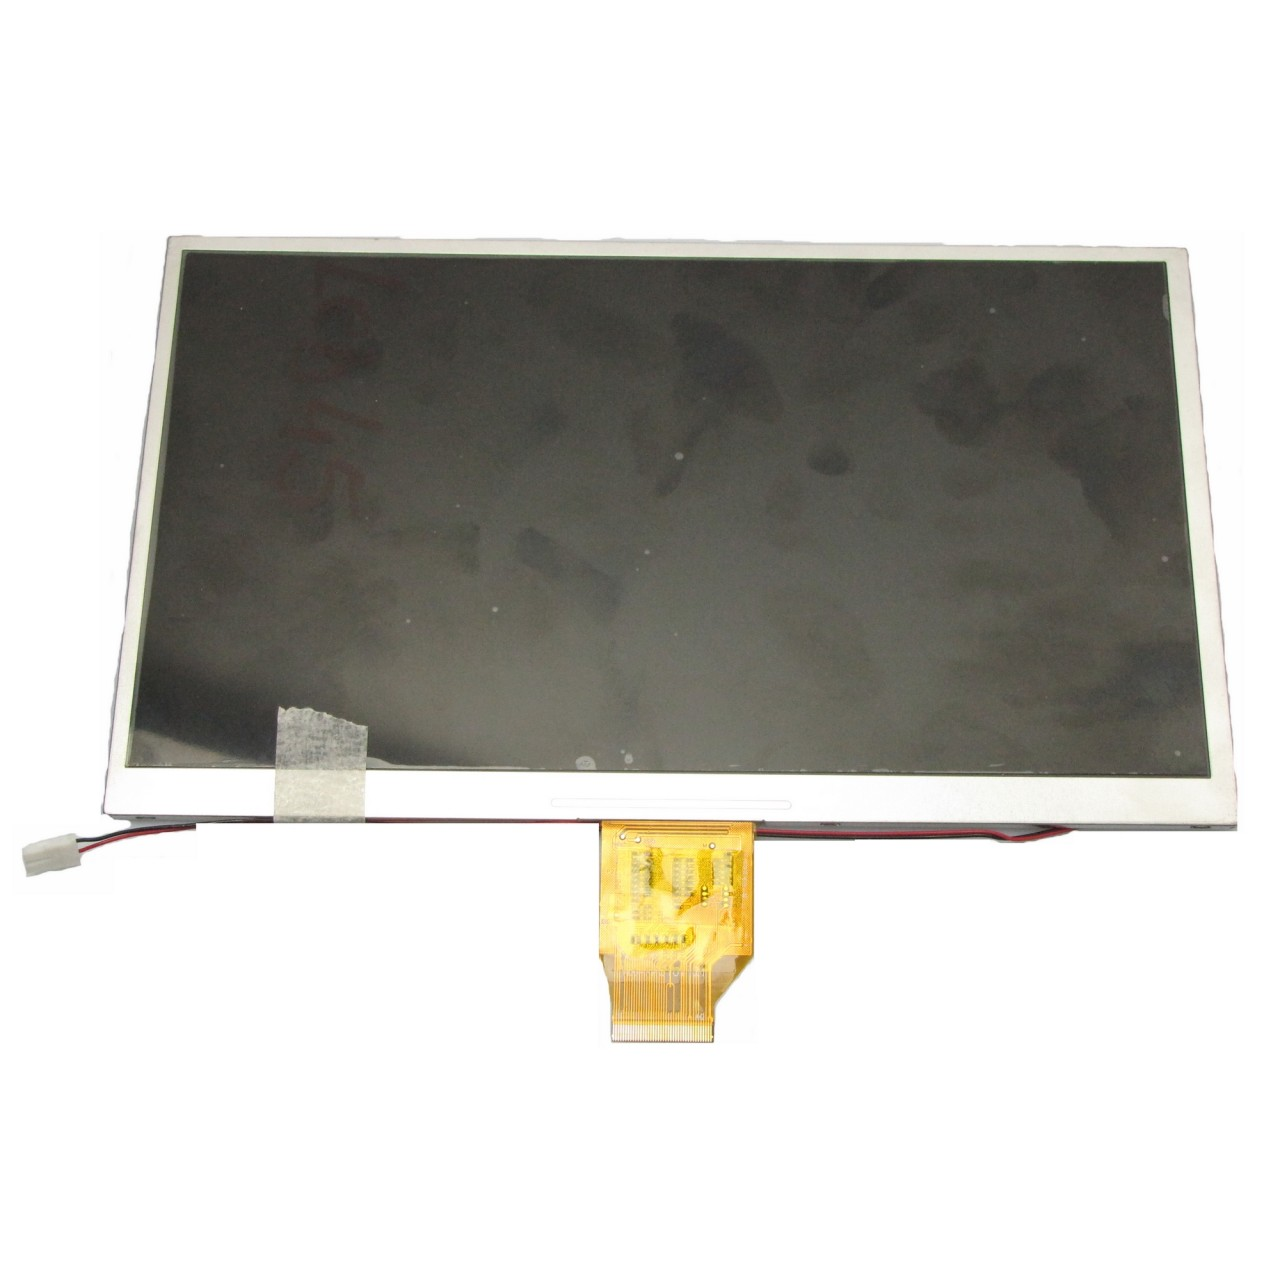 Display Serioux S108 S108Tab Ecran TN LCD Tableta ORIGINAL imagine powerlaptop.ro 2021